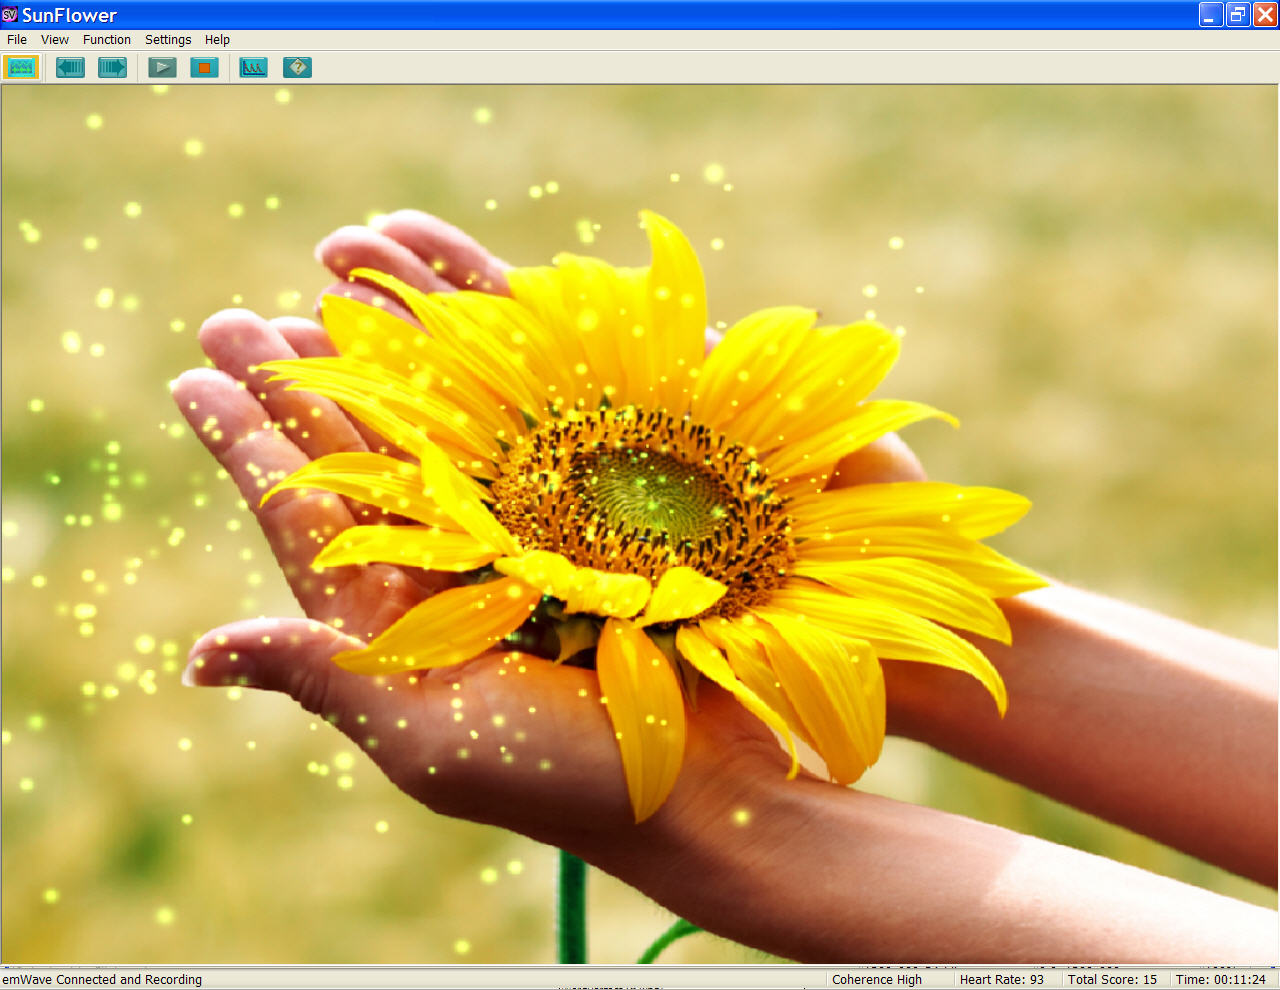 heartmath introduces the emotion visualizer pro a new software